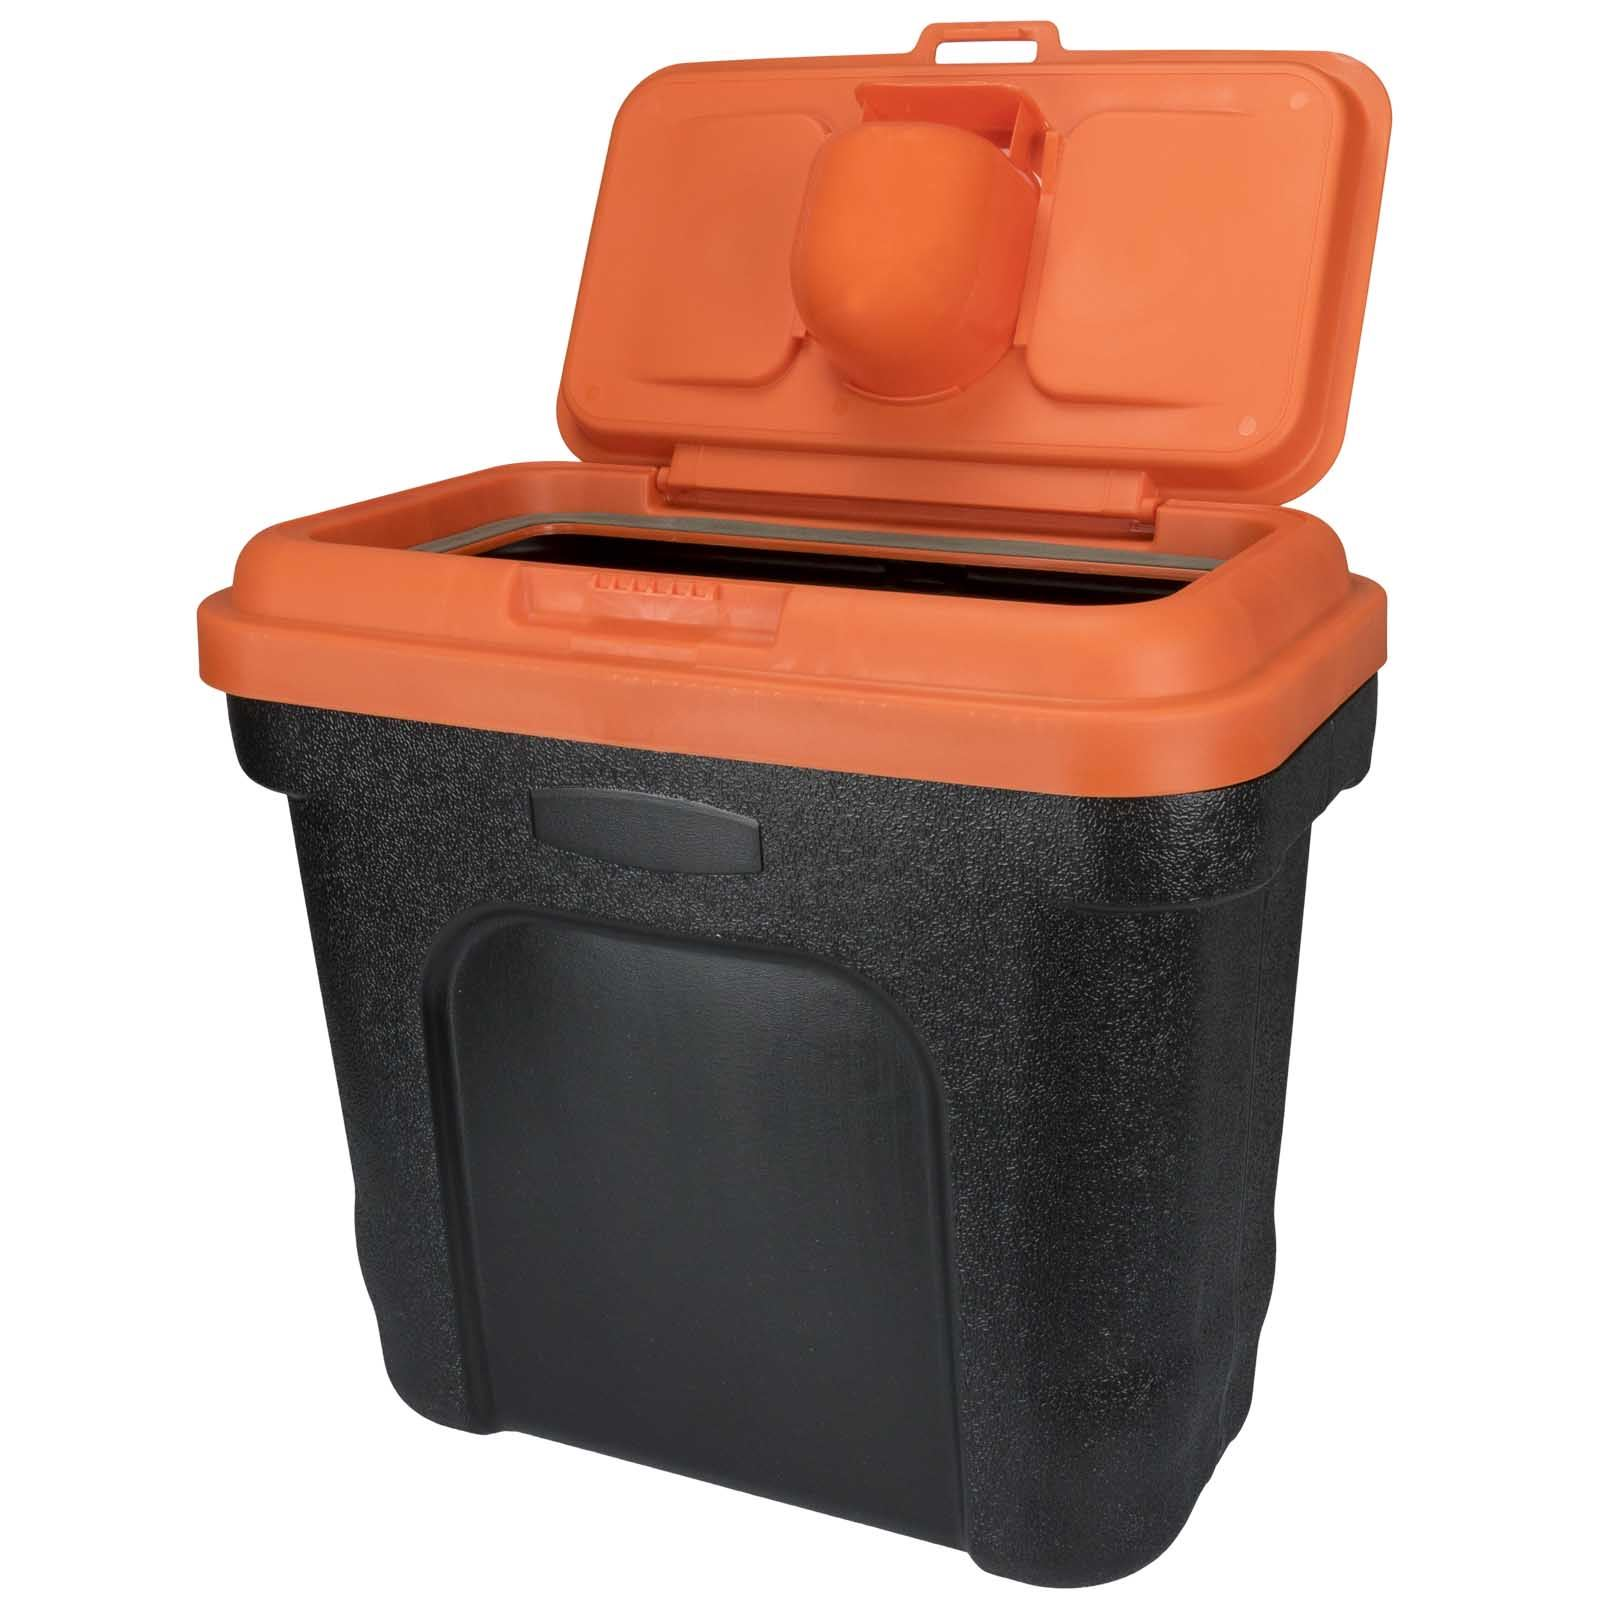 Pet-Food-Storage-Container-Dry-Dog-Cat-Food-Bird-Seed-Storage-Box-Bin-With-Scoop thumbnail 8